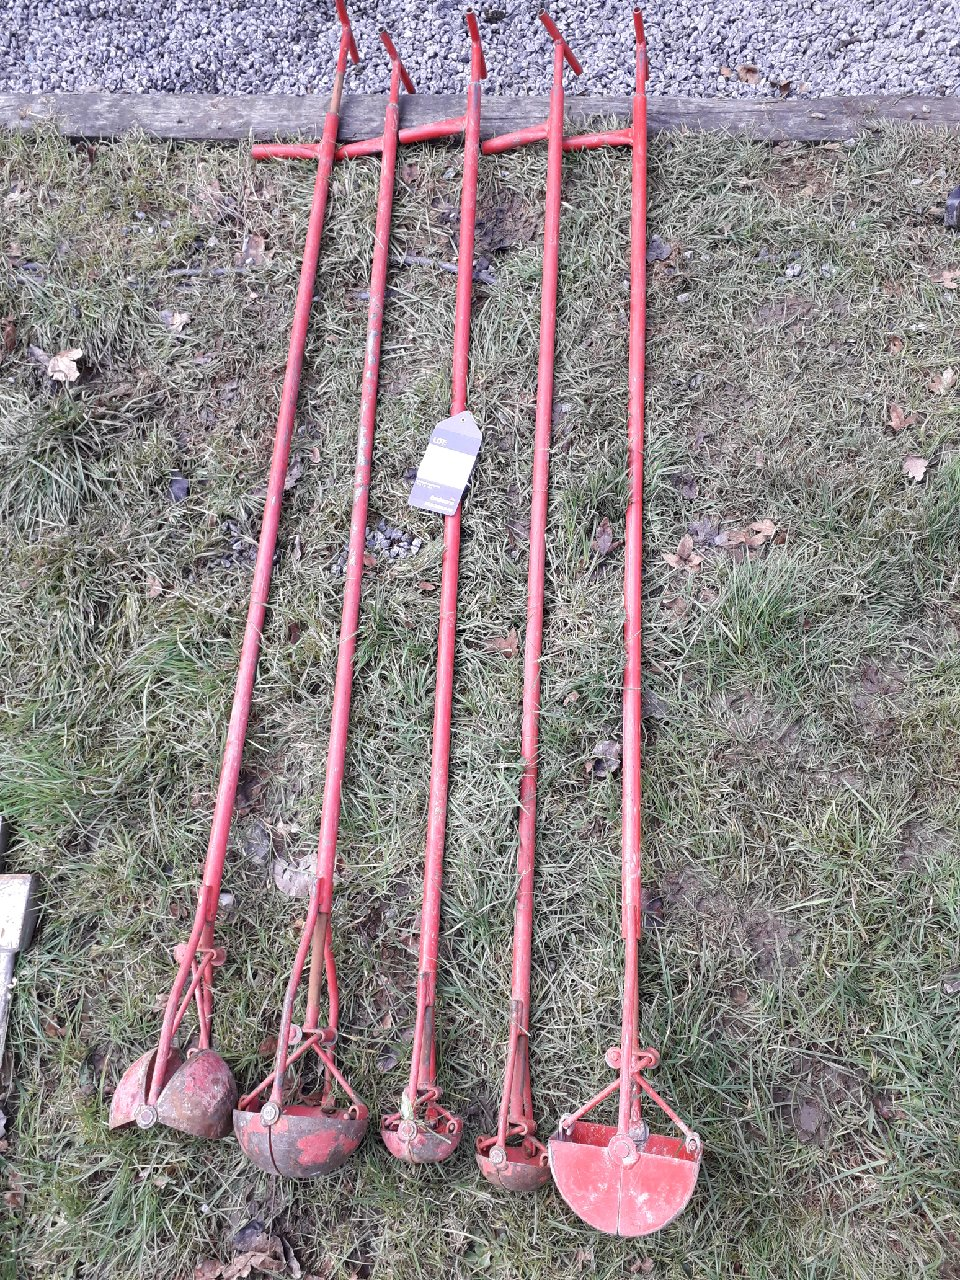 Lot 6 - 5 x various drainage scoops. (Please note: Viewing is by appointment only. Please Tel: 0161 429